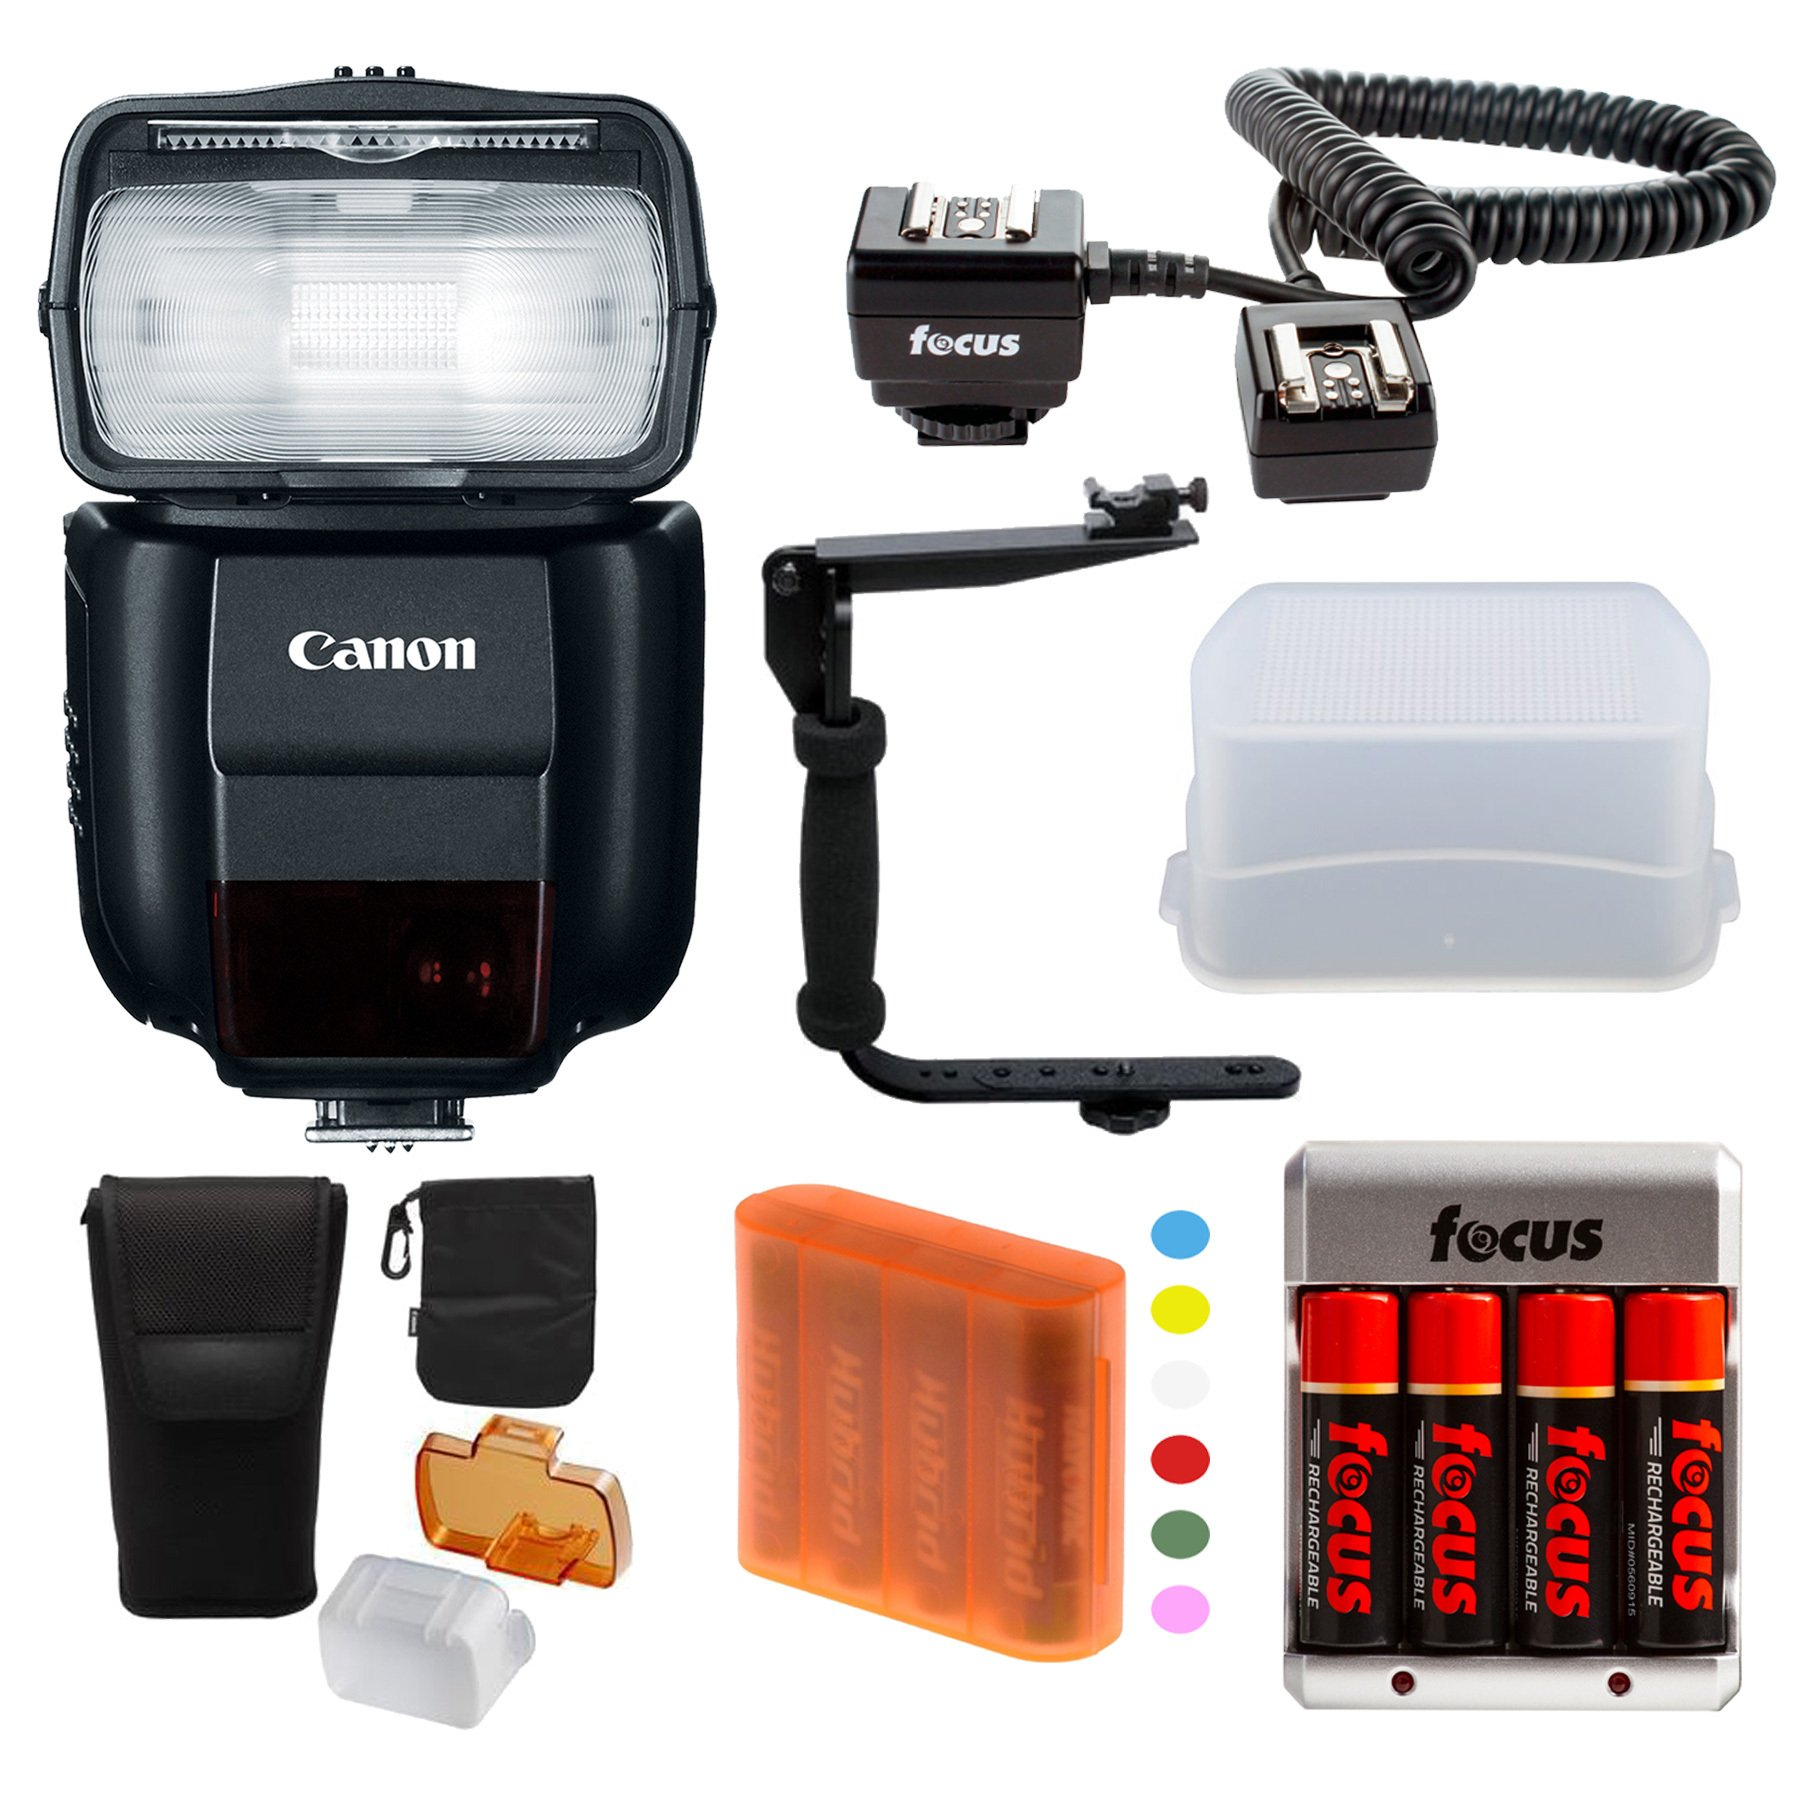 Canon Speedlite 430EX II Flash + Deluxe Flash Bracket Accessory Kit for Canon... by Canon